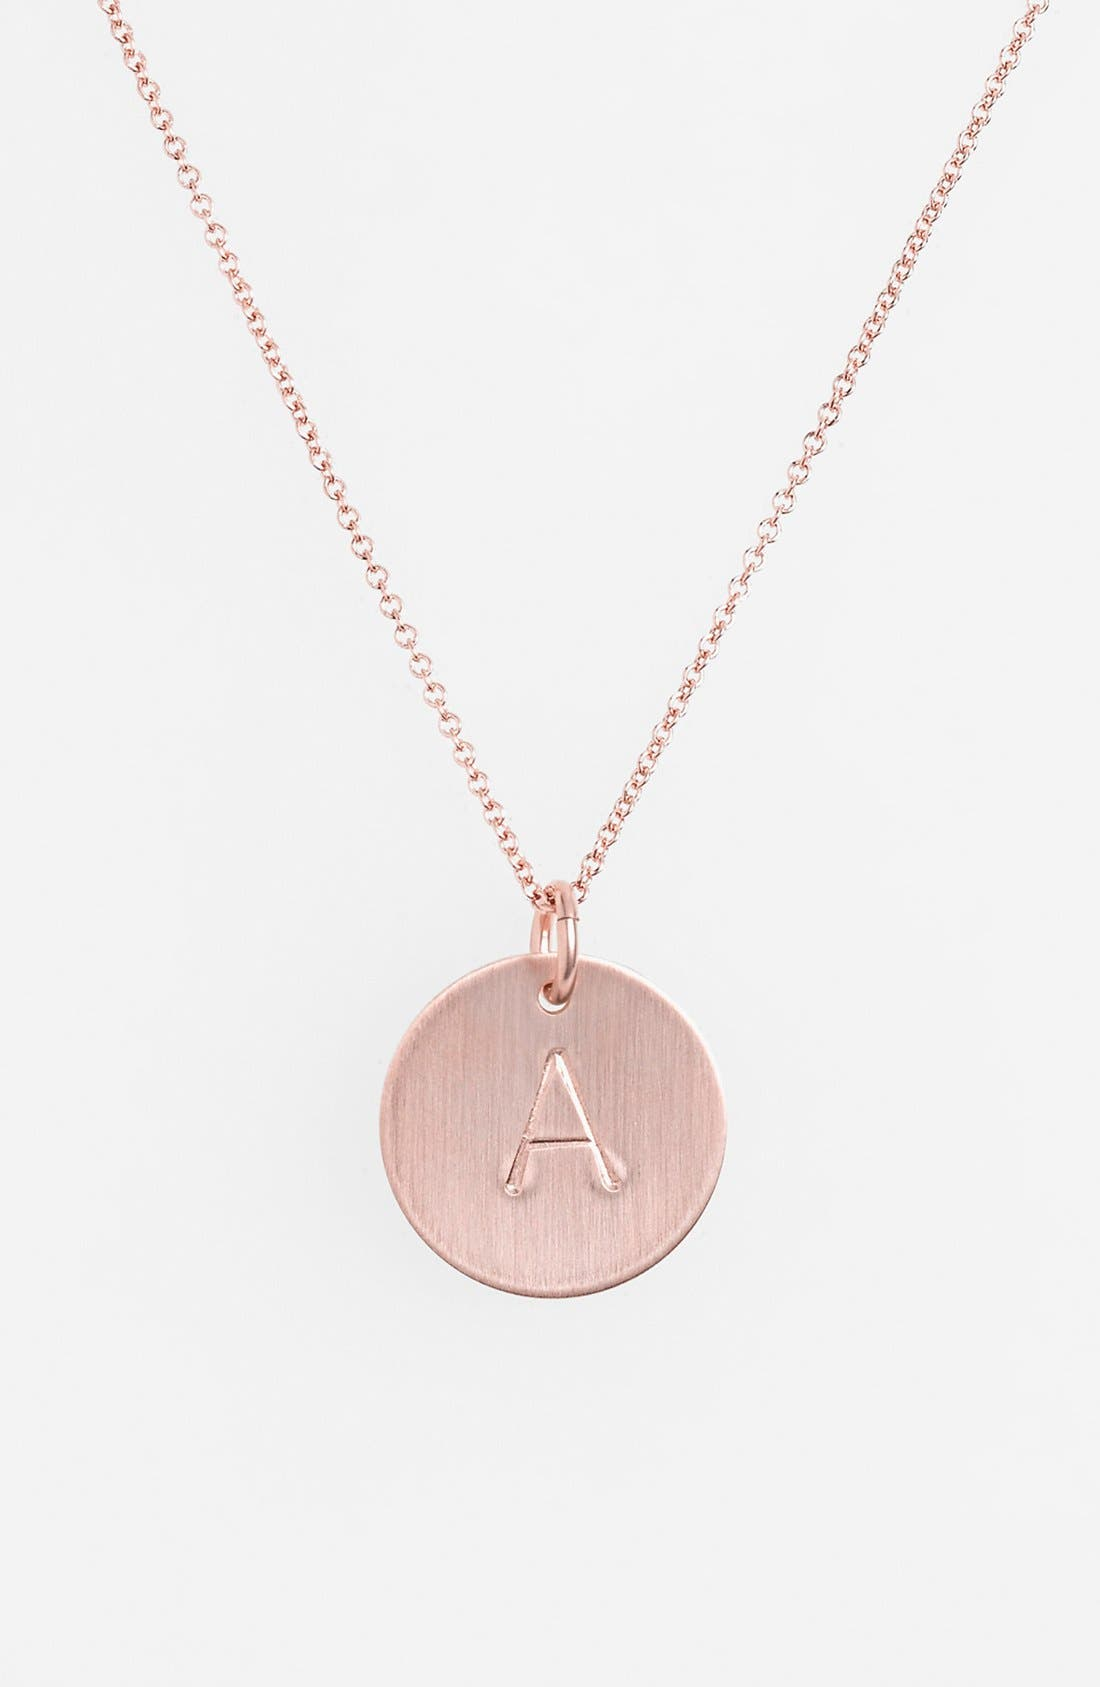 14k-Rose Gold Fill Initial Disc Necklace,                             Main thumbnail 1, color,                             710